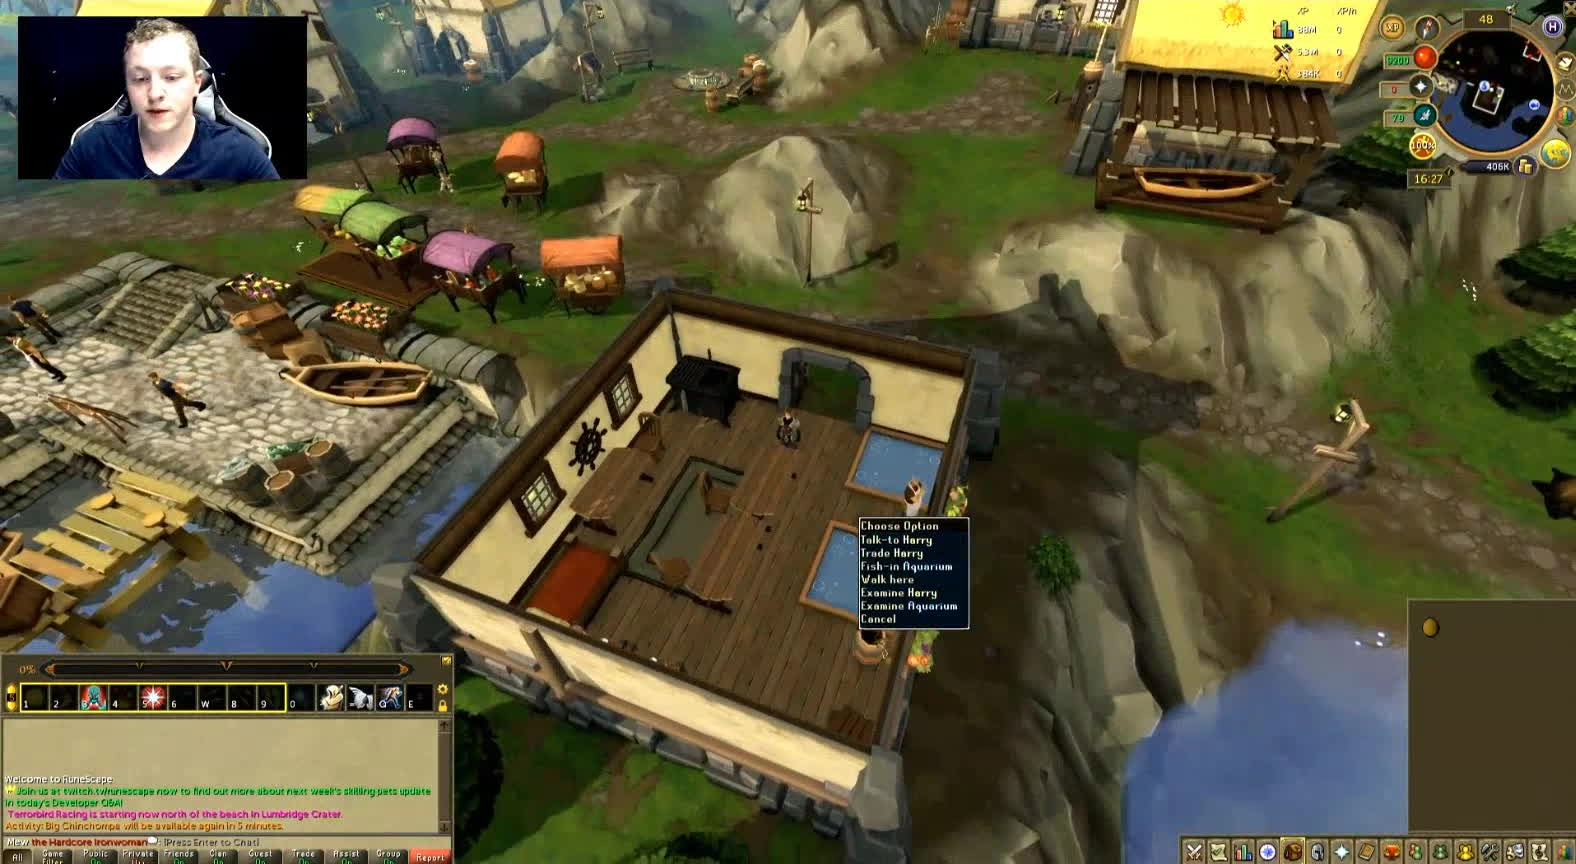 runescape, Runescape - East Catherby GIFs